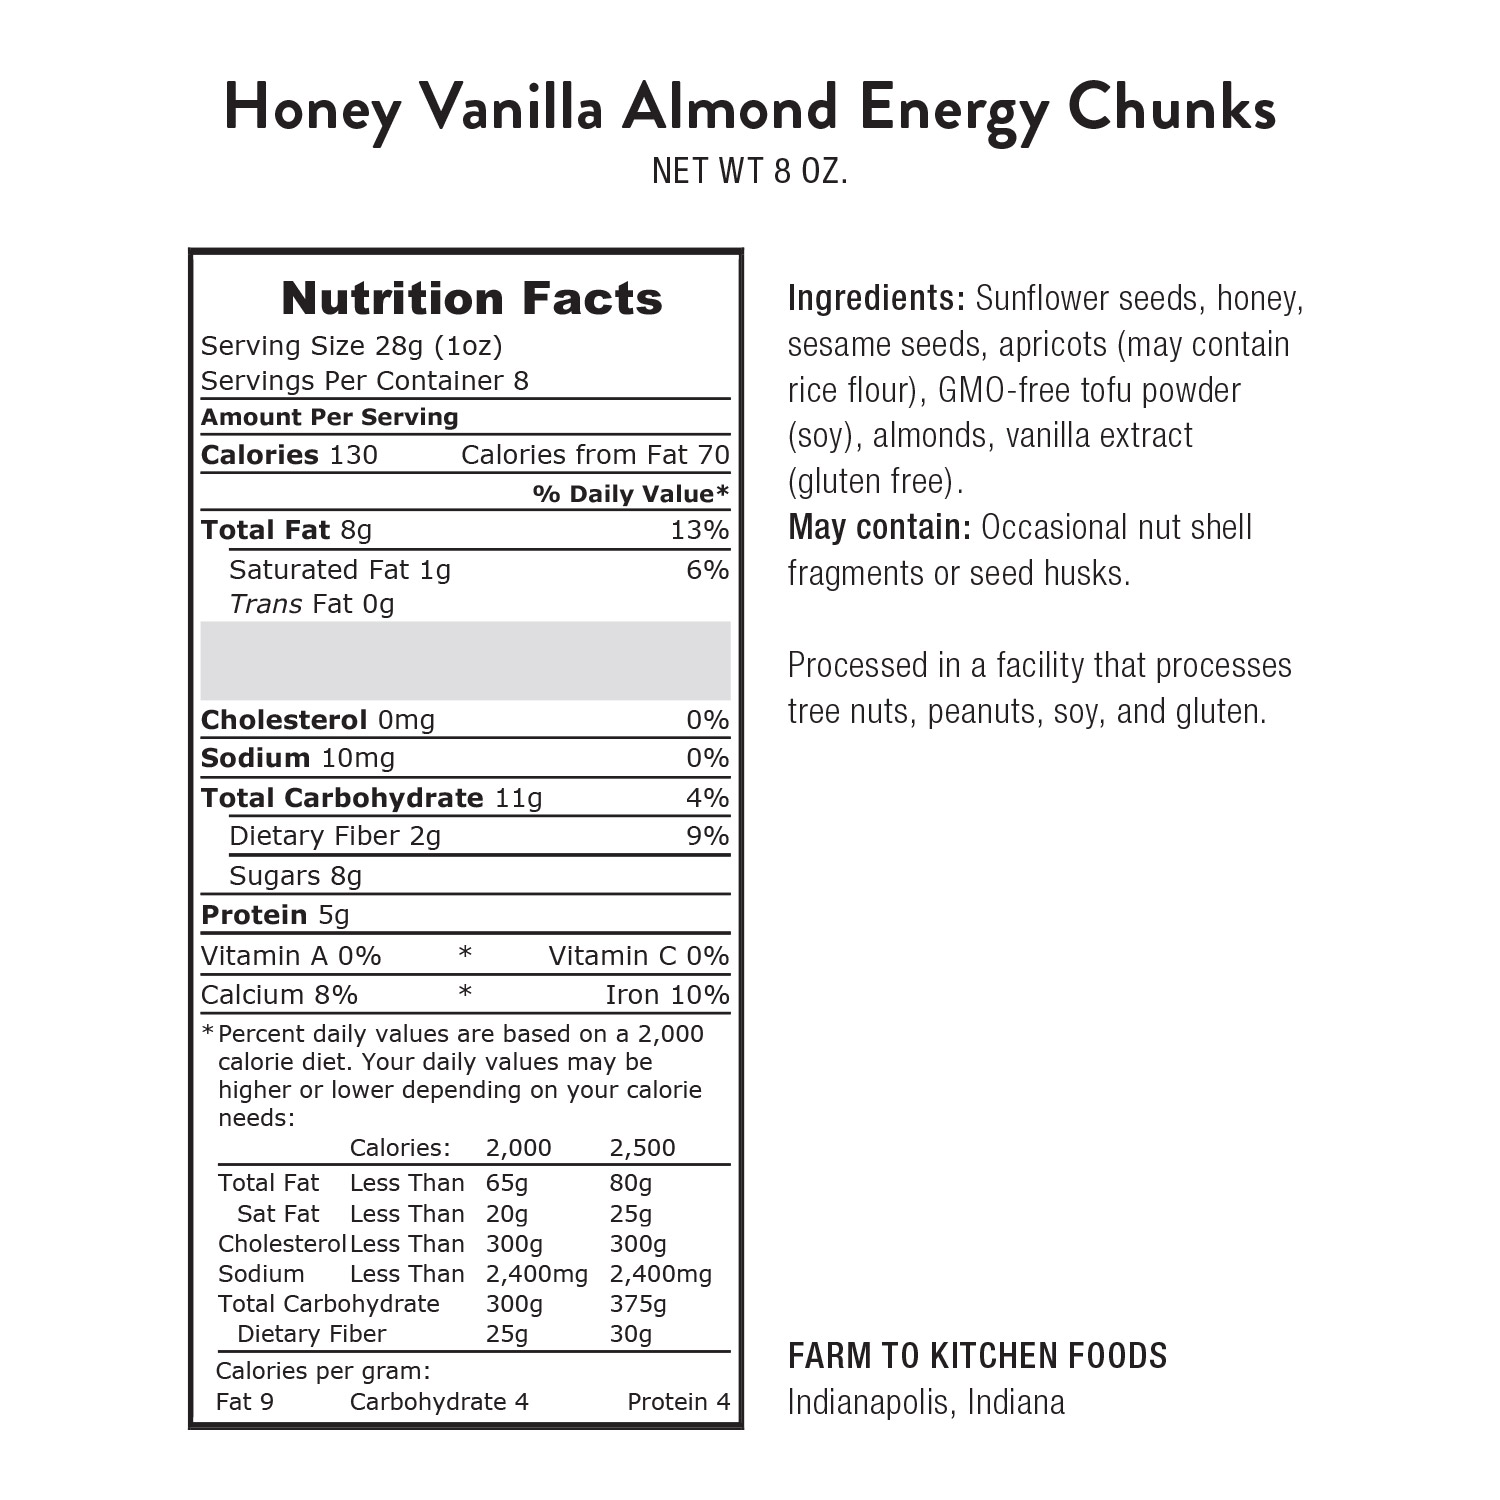 Energy Chunks, Honey Vanilla Almond